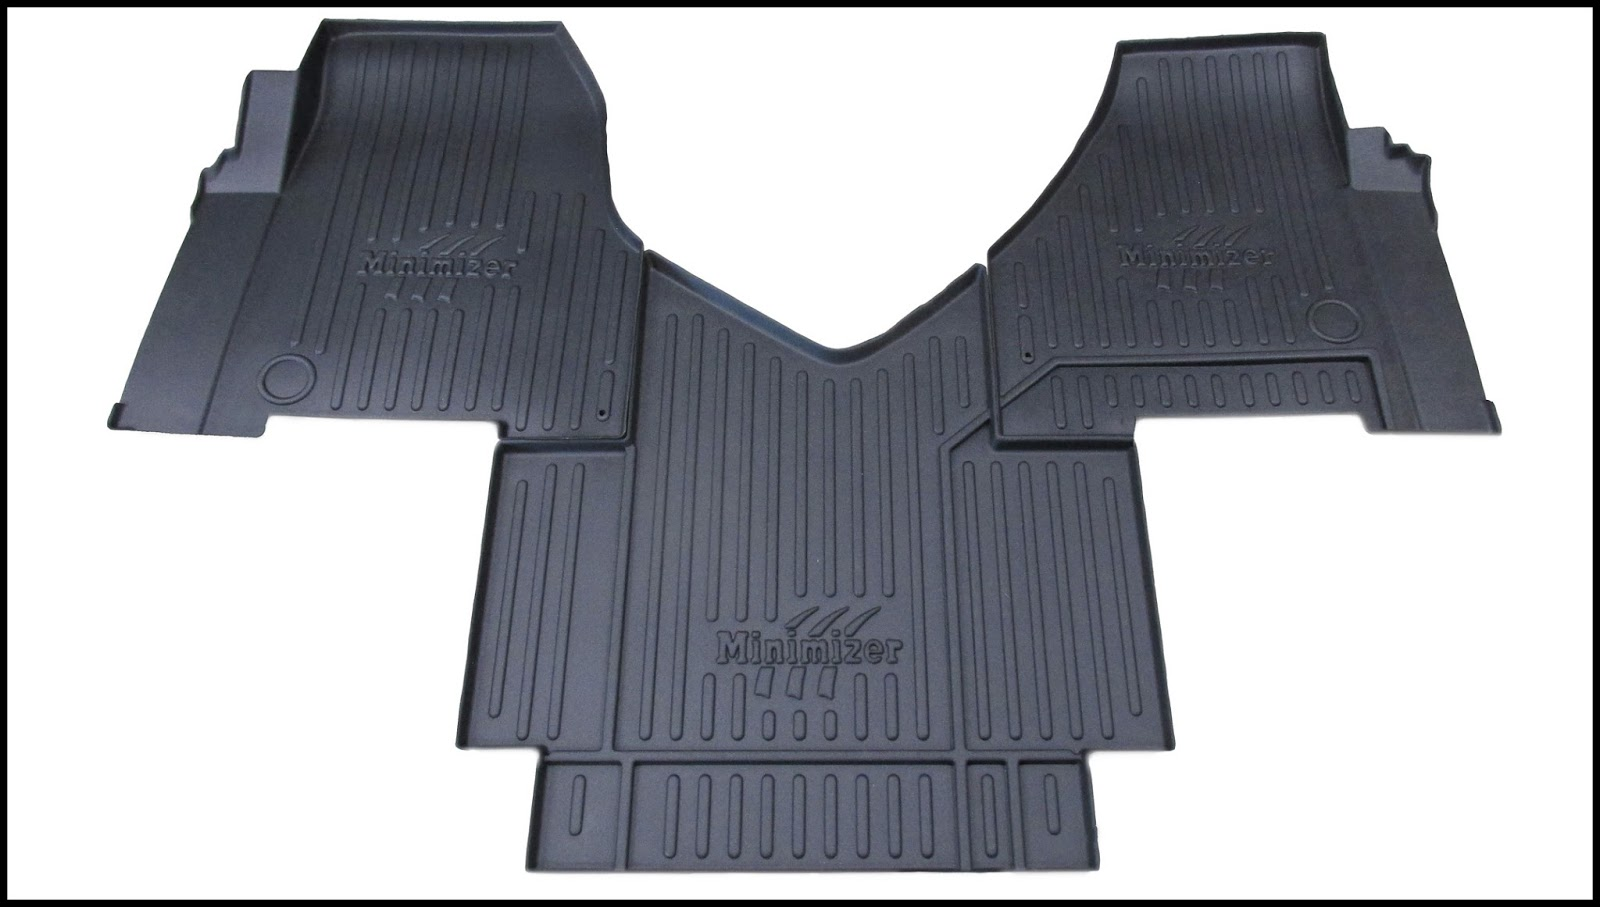 interior state mats fits piece semi asp trucks international set minimizer floor l truck mat